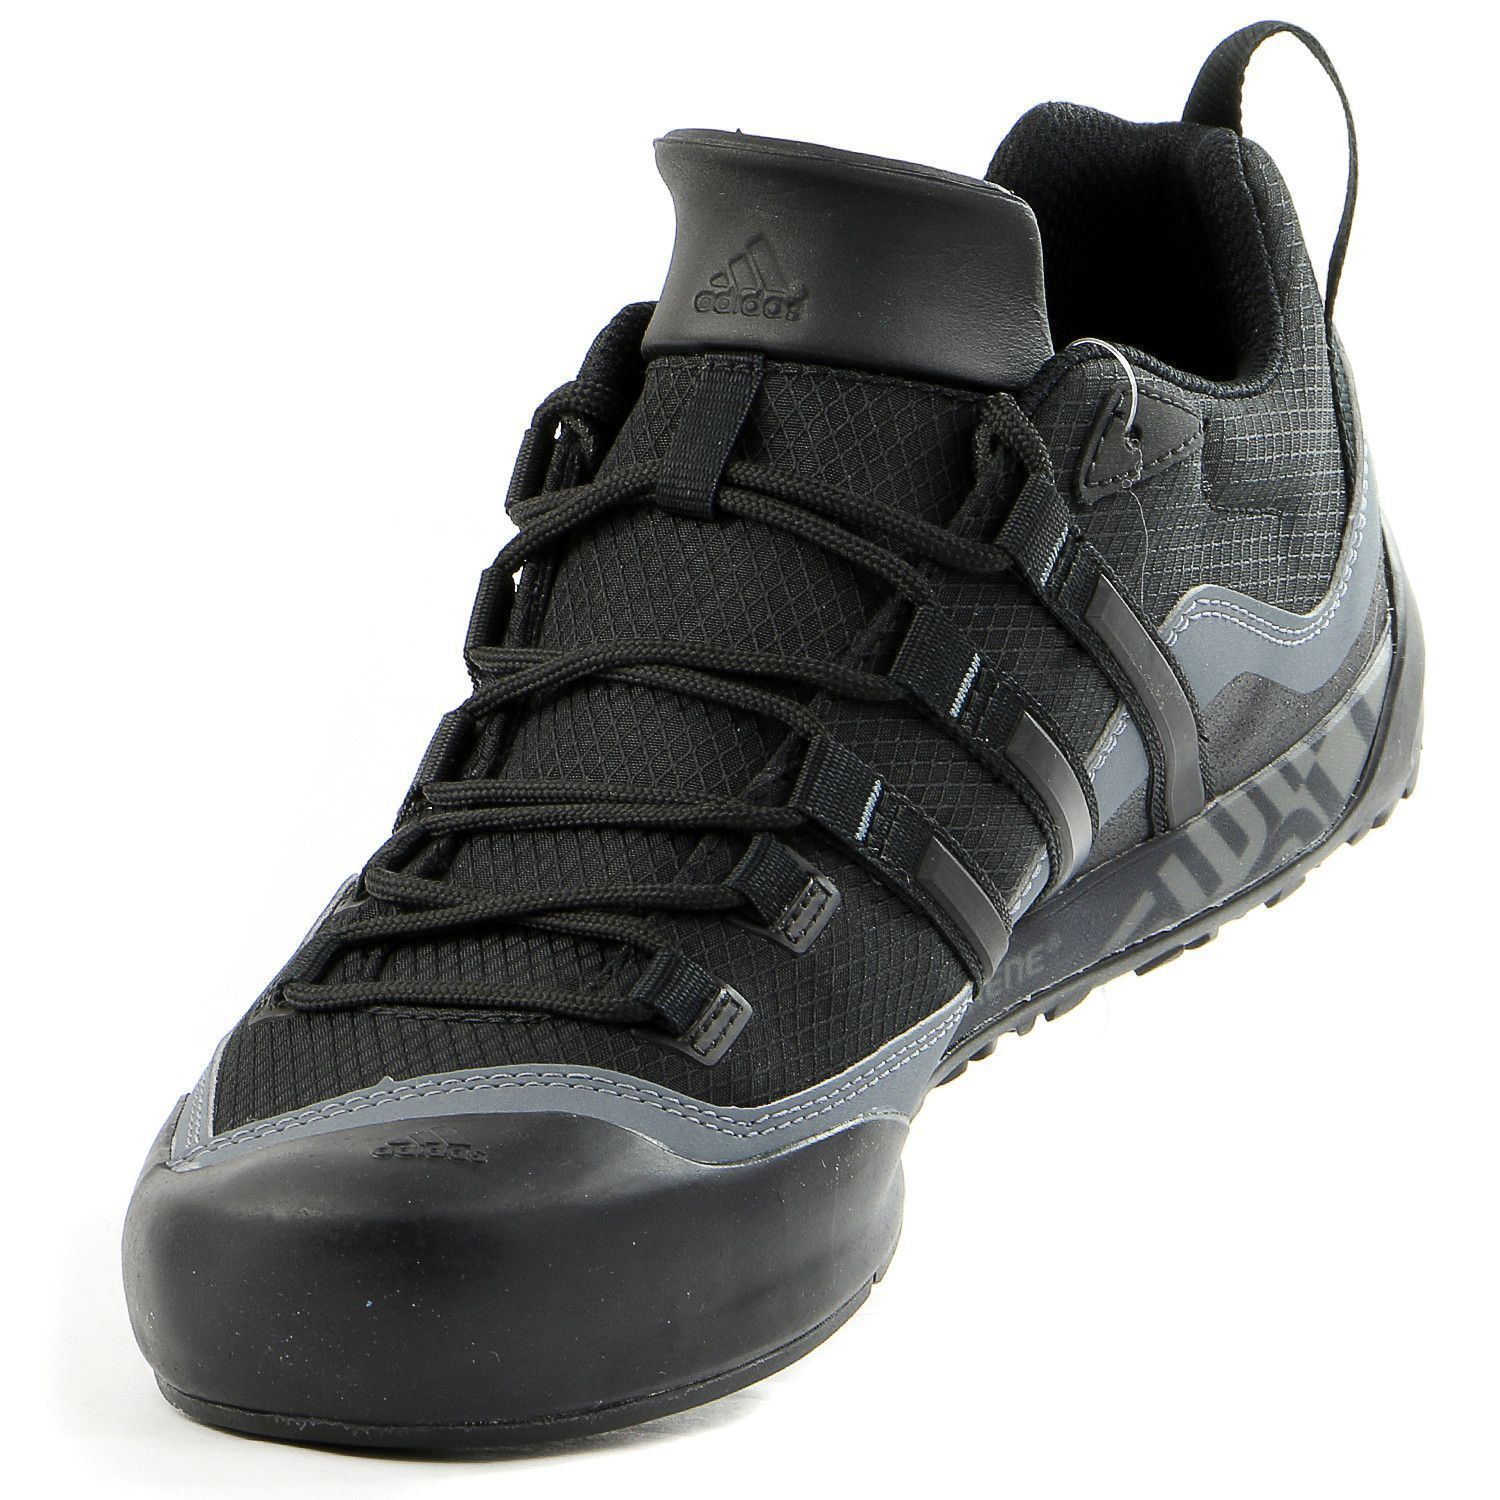 wholesale dealer 49c6a ca725 Adidas Outdoor Terrex Swift Solo Hiking Sneaker Trail Shoe - Mens